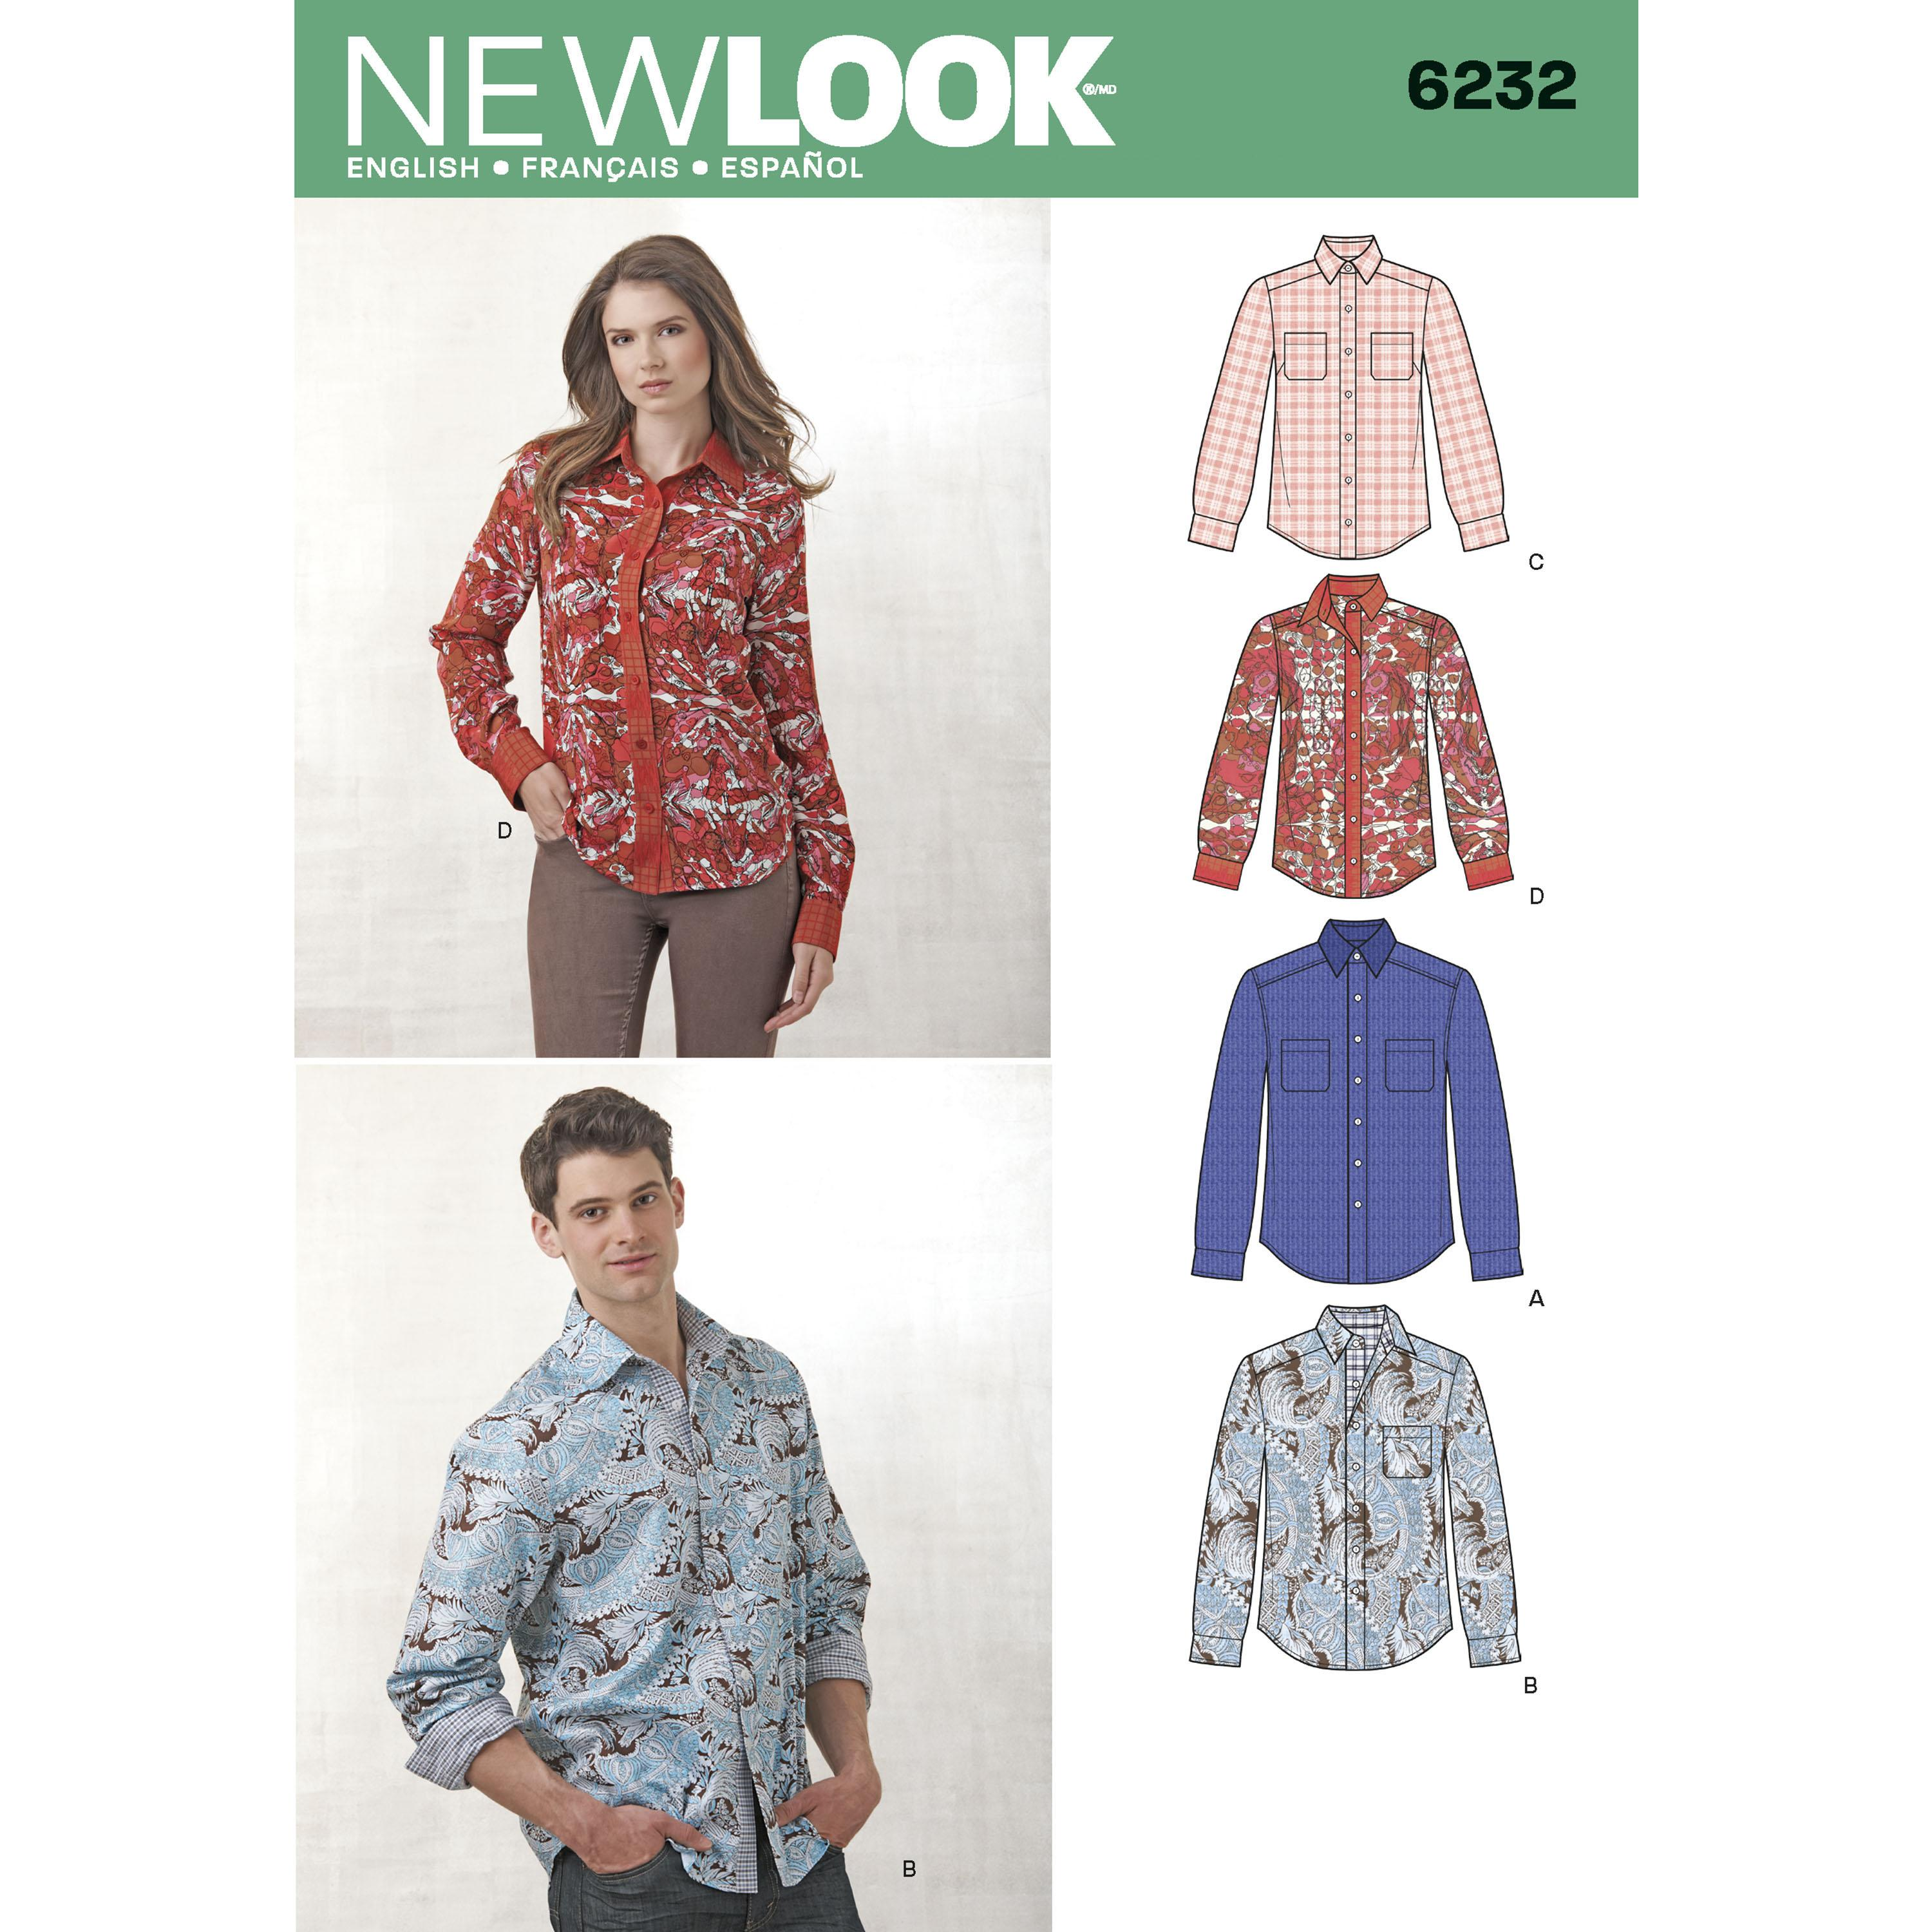 NewLook N6232 Misses' and Men's Button Down Shirt